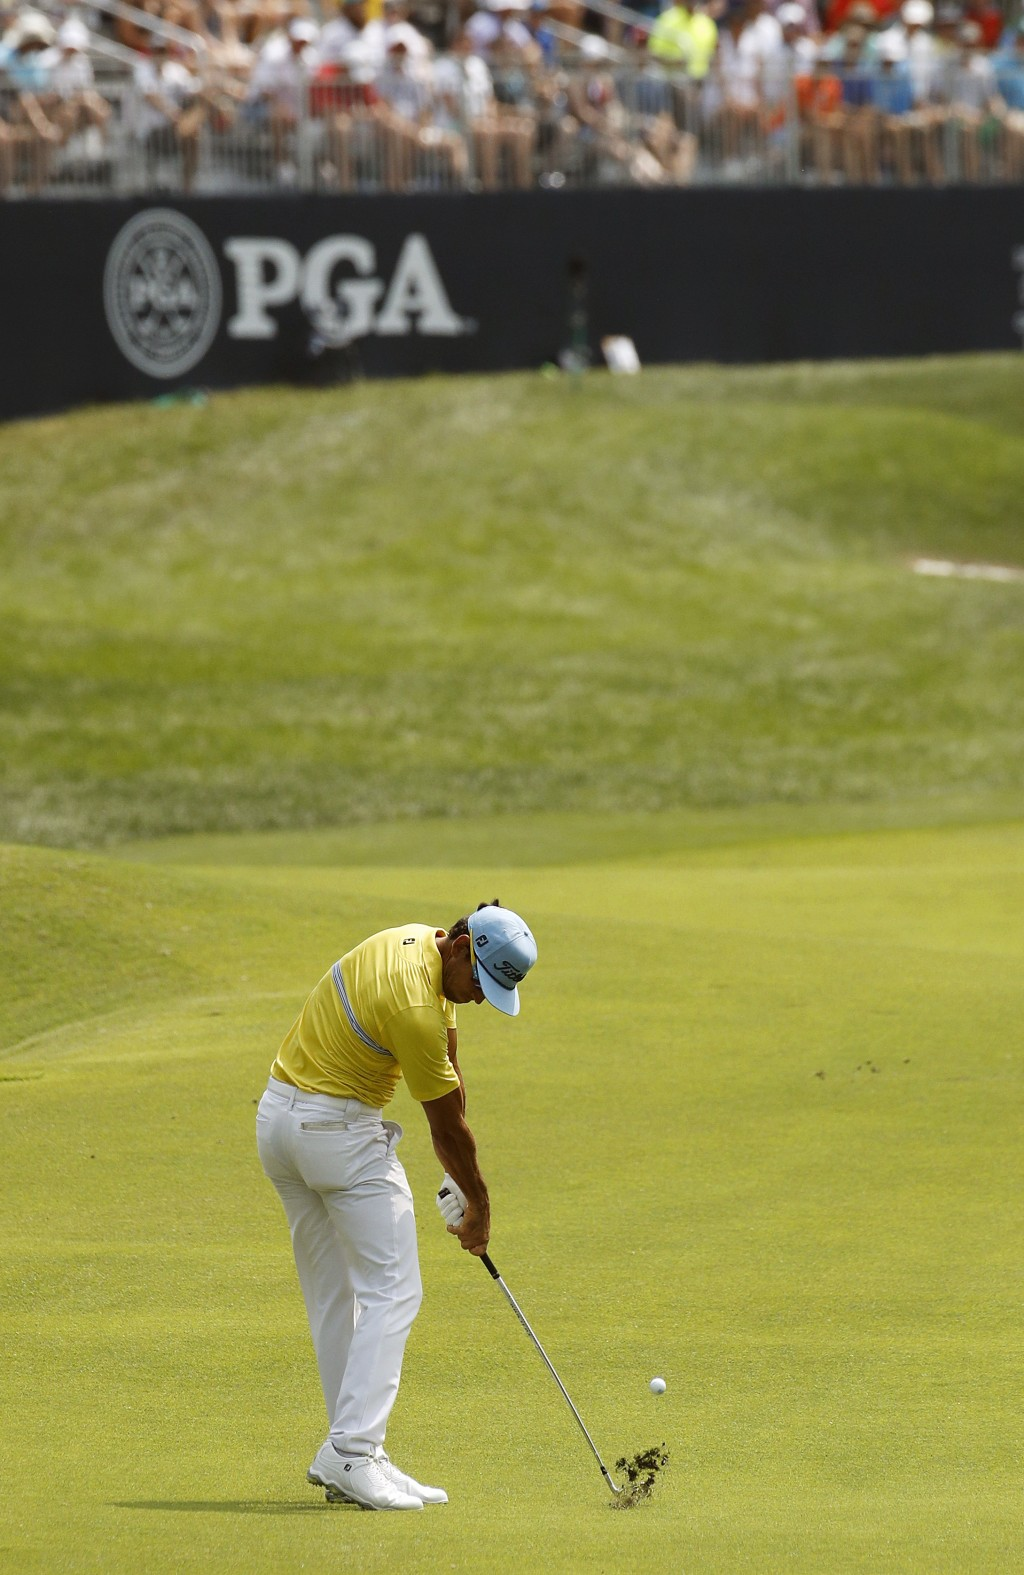 Rafa Cabrera Bello, of Spain, hits to the 17th green during the final round of the PGA Championship golf tournament at Bellerive Country Club, Sunday,...